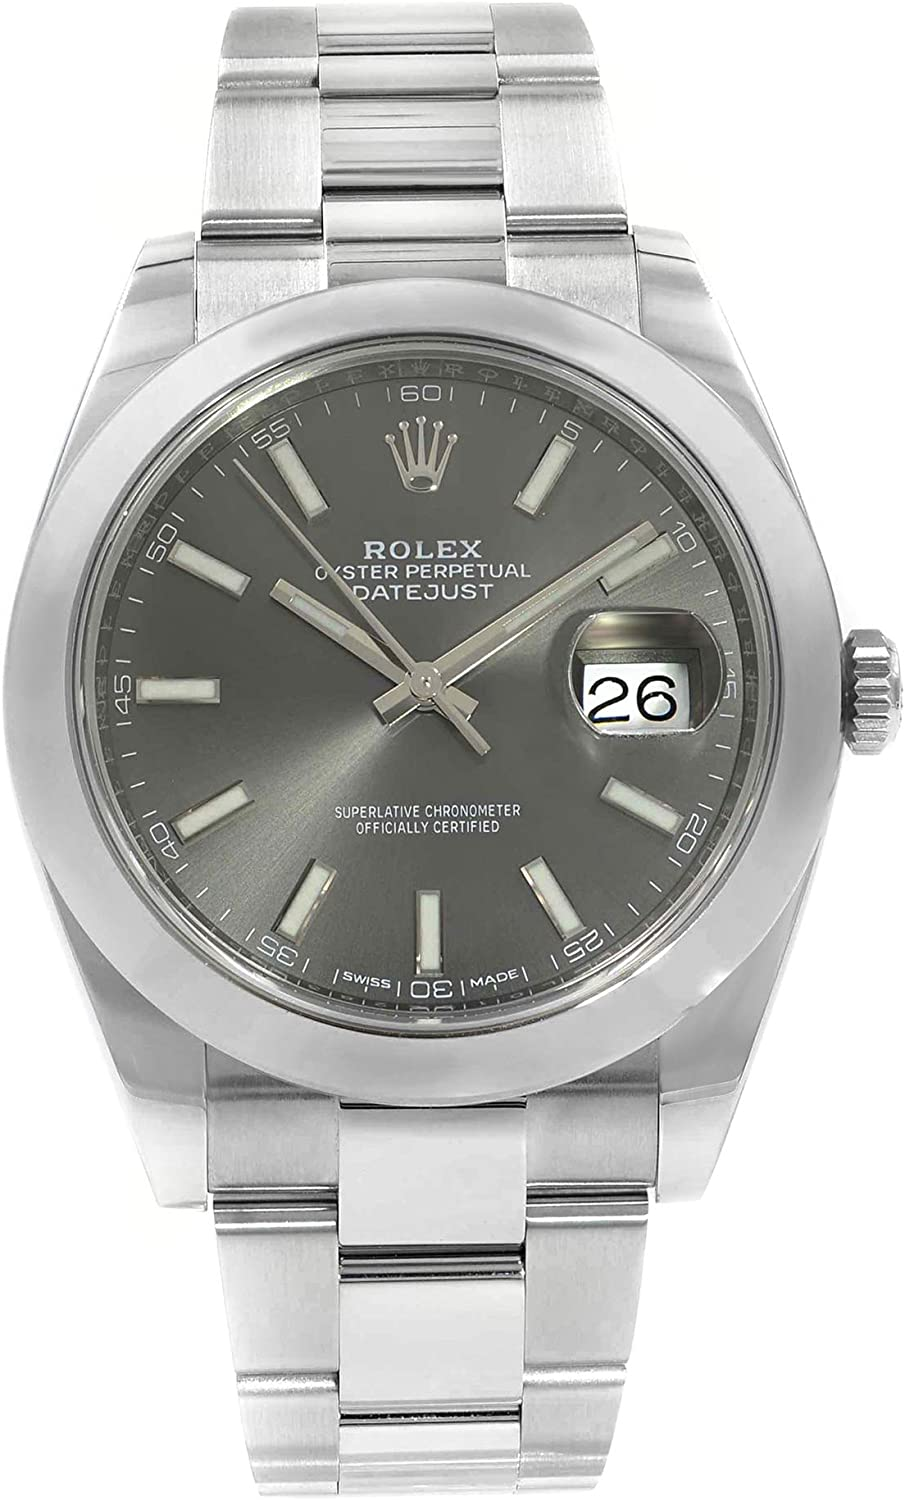 Rolex Oyster Perpetual Datejust Rhodium Dial Automatic Men's Watch 126300RSO